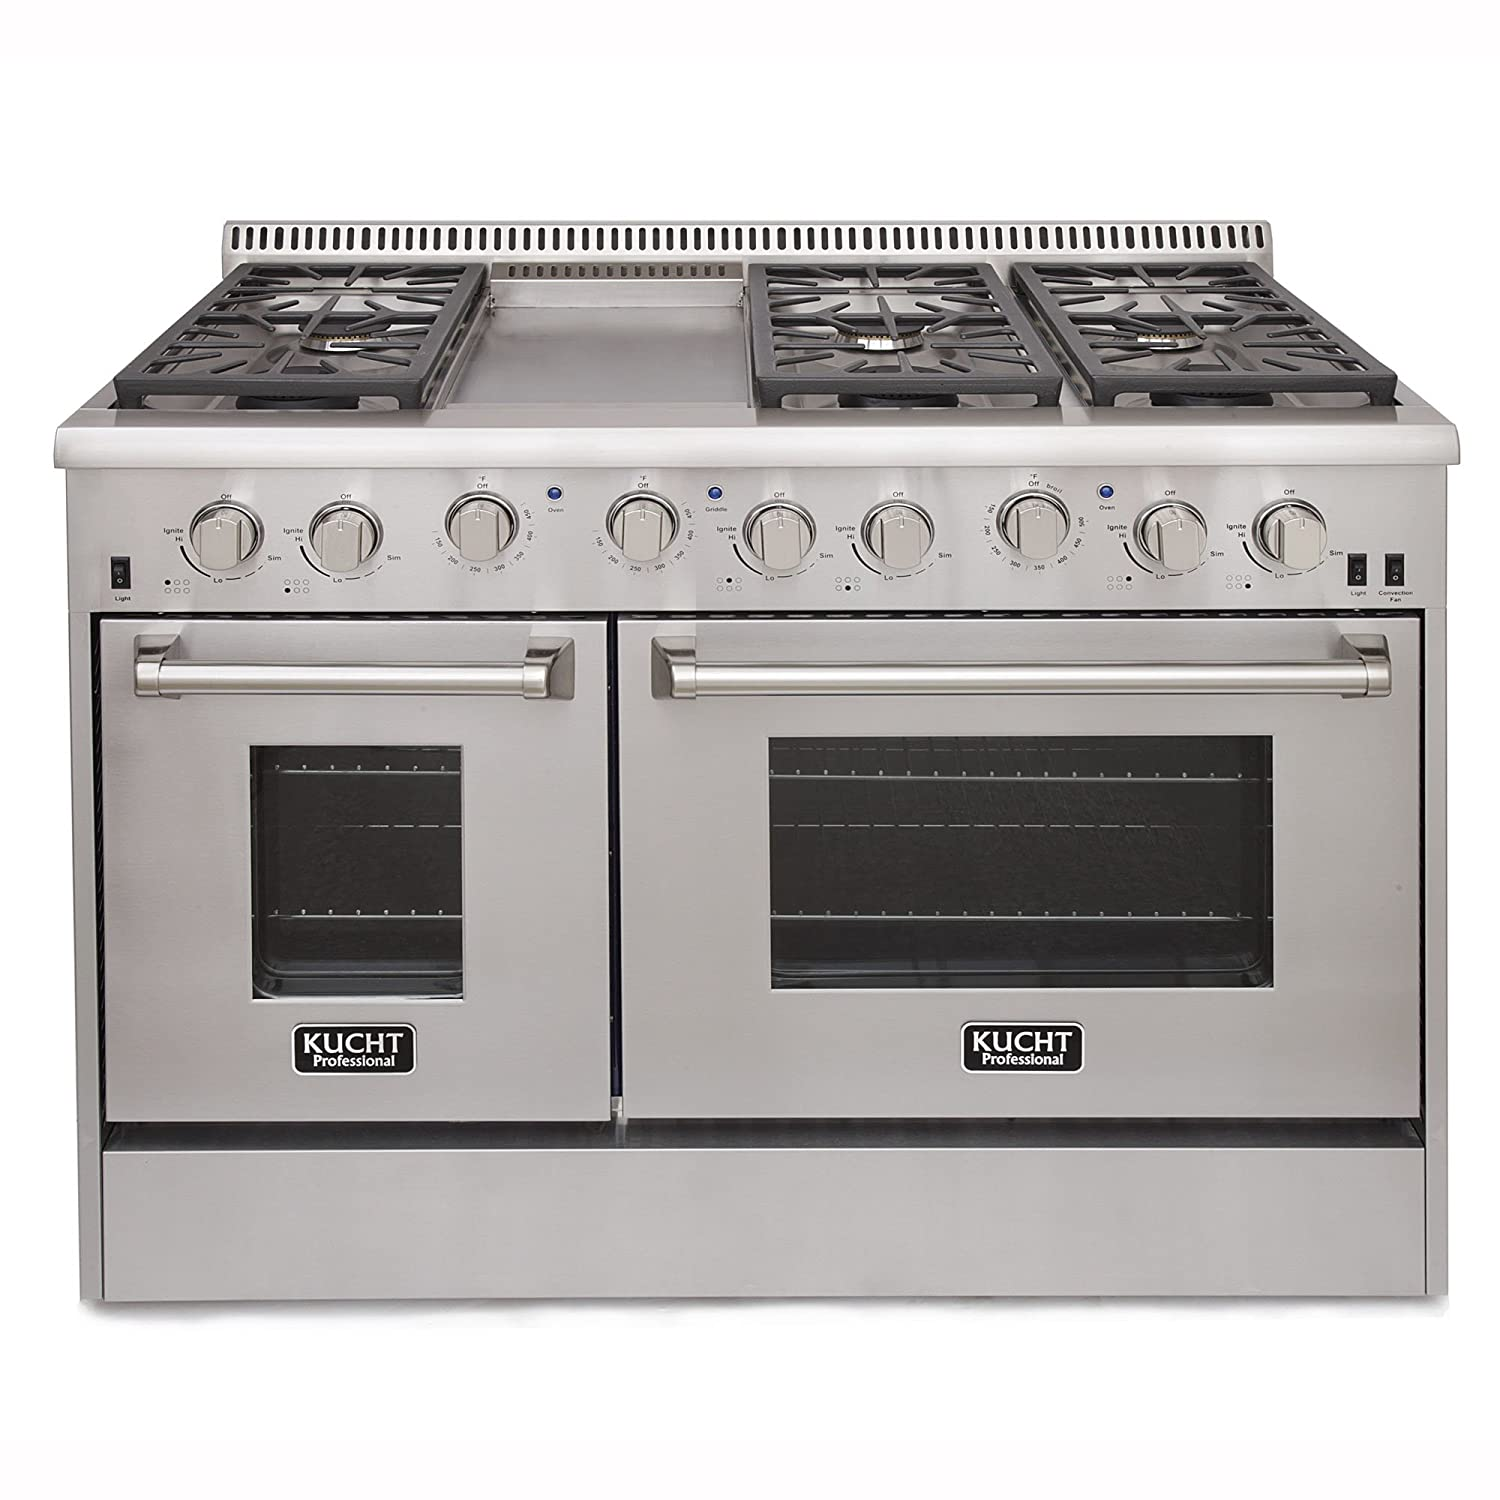 Kucht KRG4804U Professional 48' 6.7 cu. ft. Natural Gas Range with Sealed Burners, Griddle and Two Ovens, Stainless-Steel Kucht Appliances